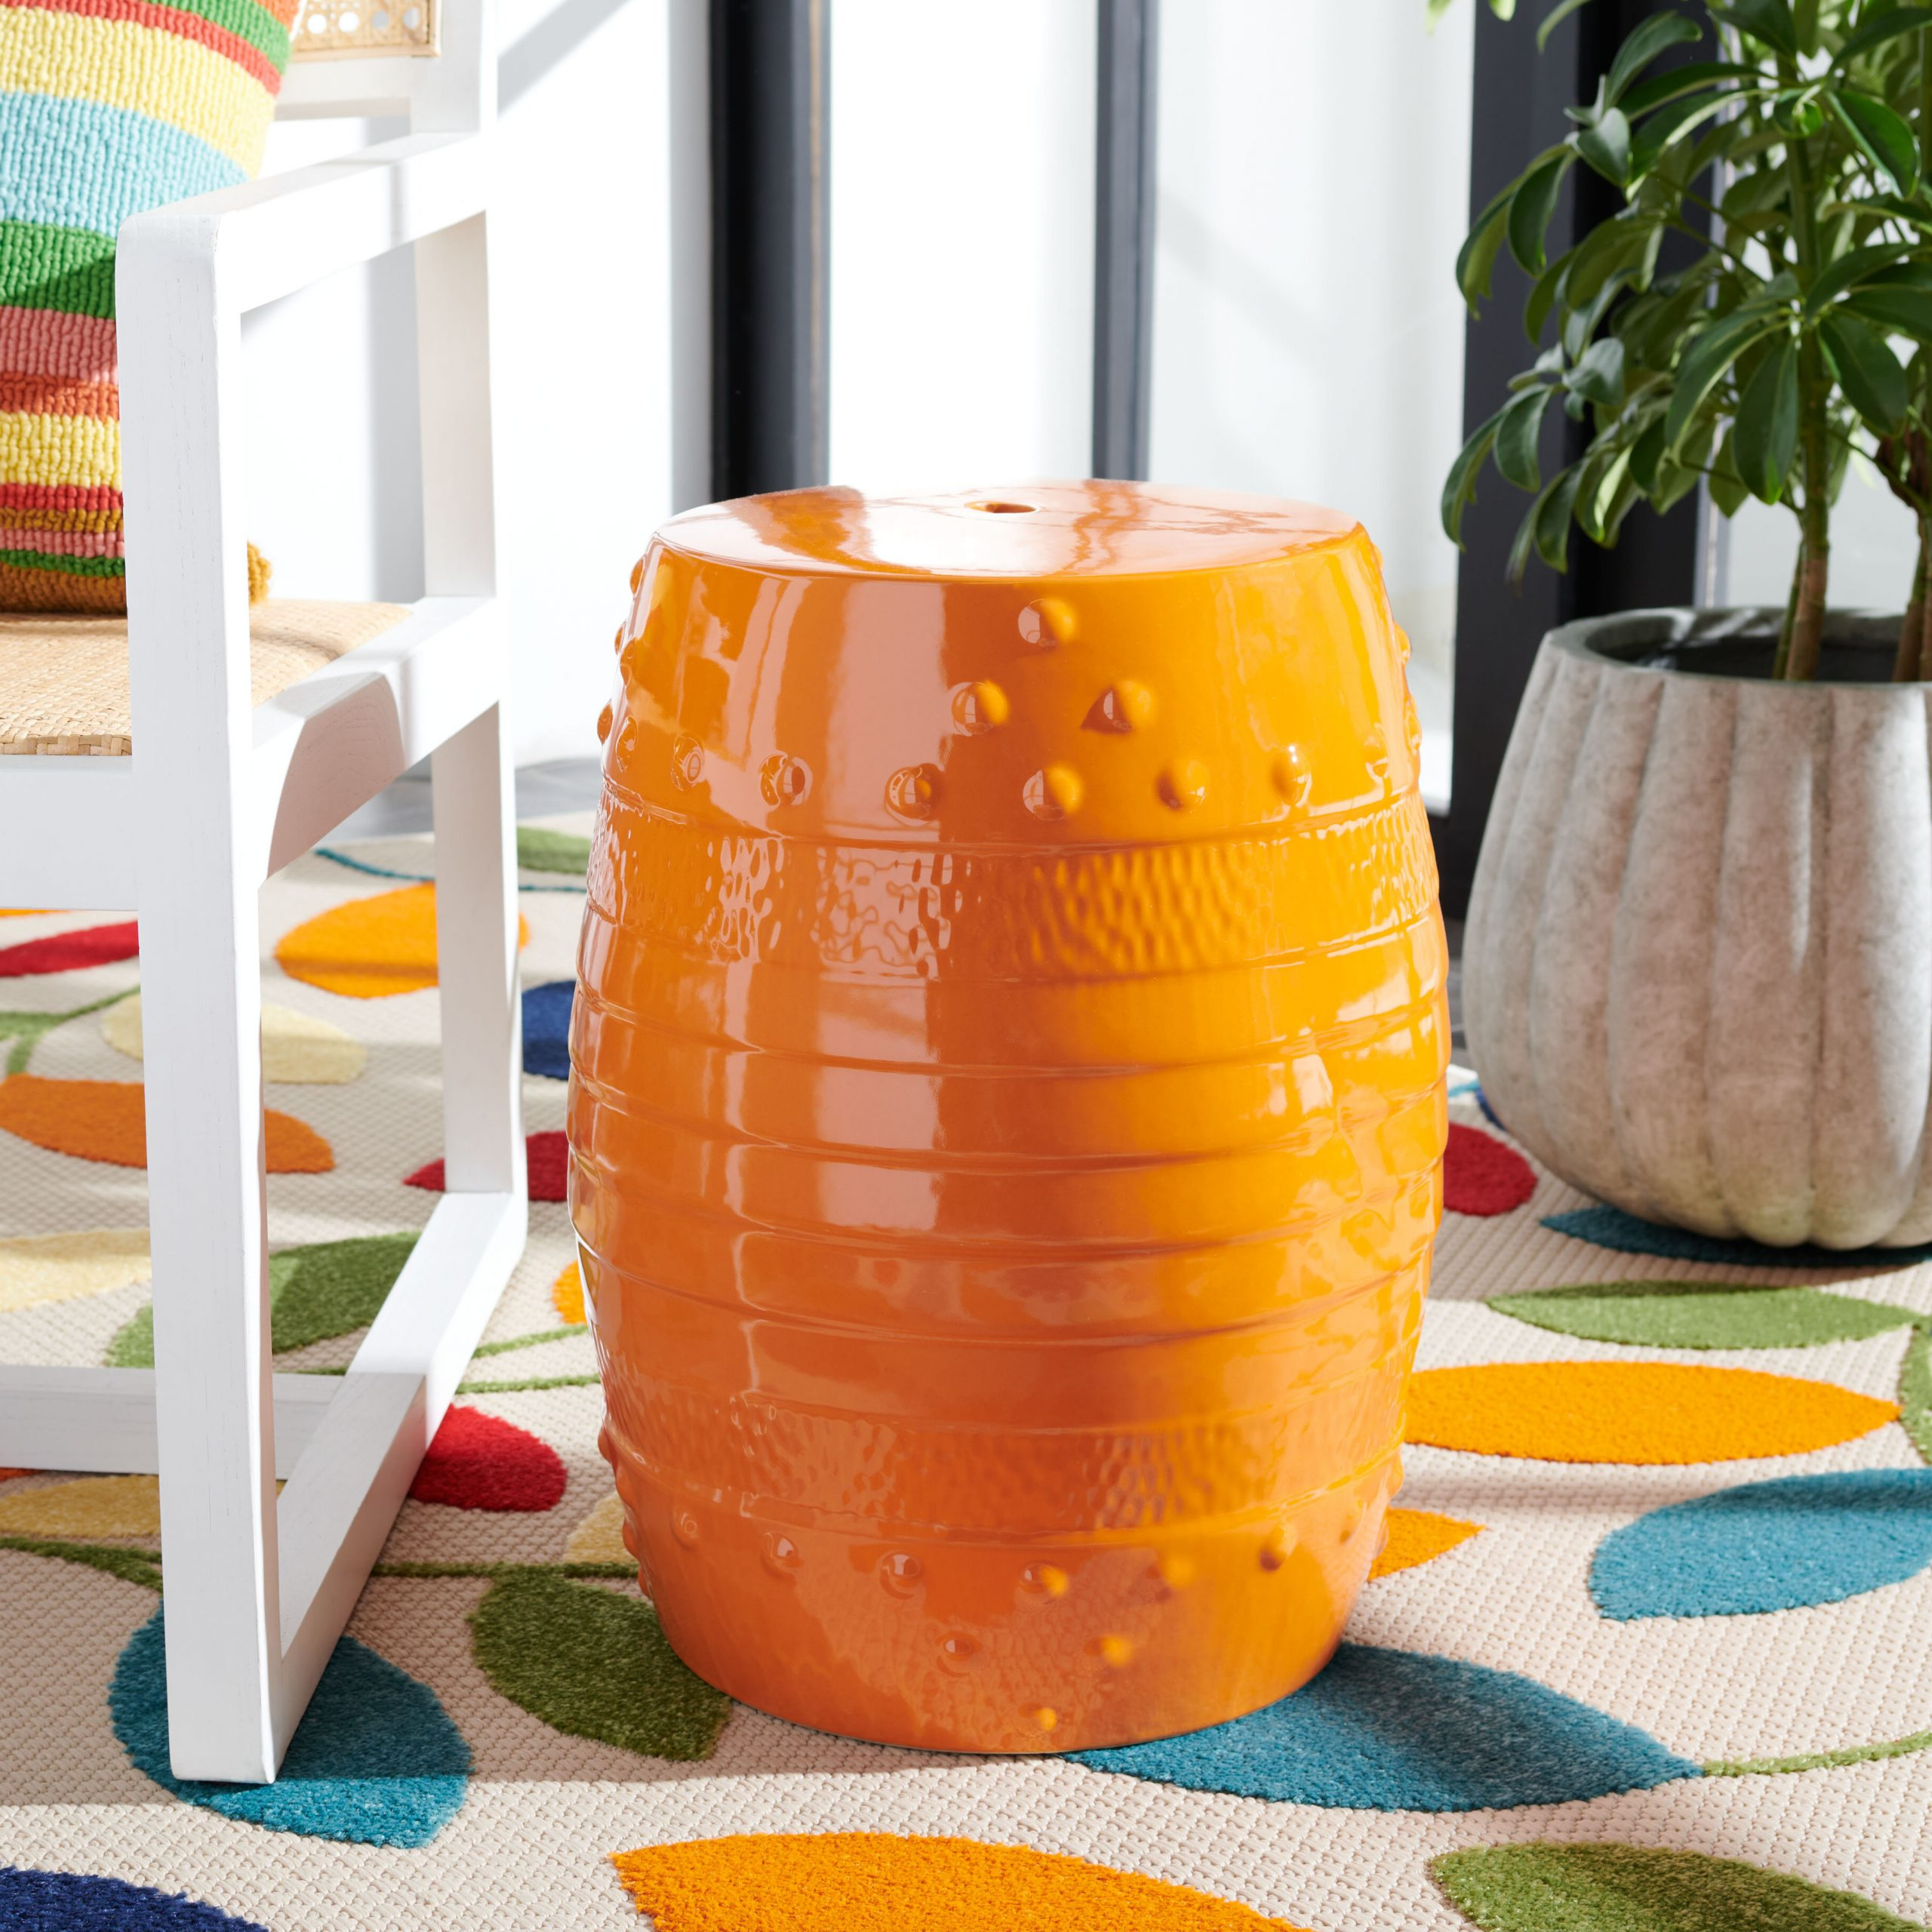 Most Popular Holbrook Ceramic Garden Stools Regarding Akinruntan Ceramic Garden Stool (View 27 of 30)